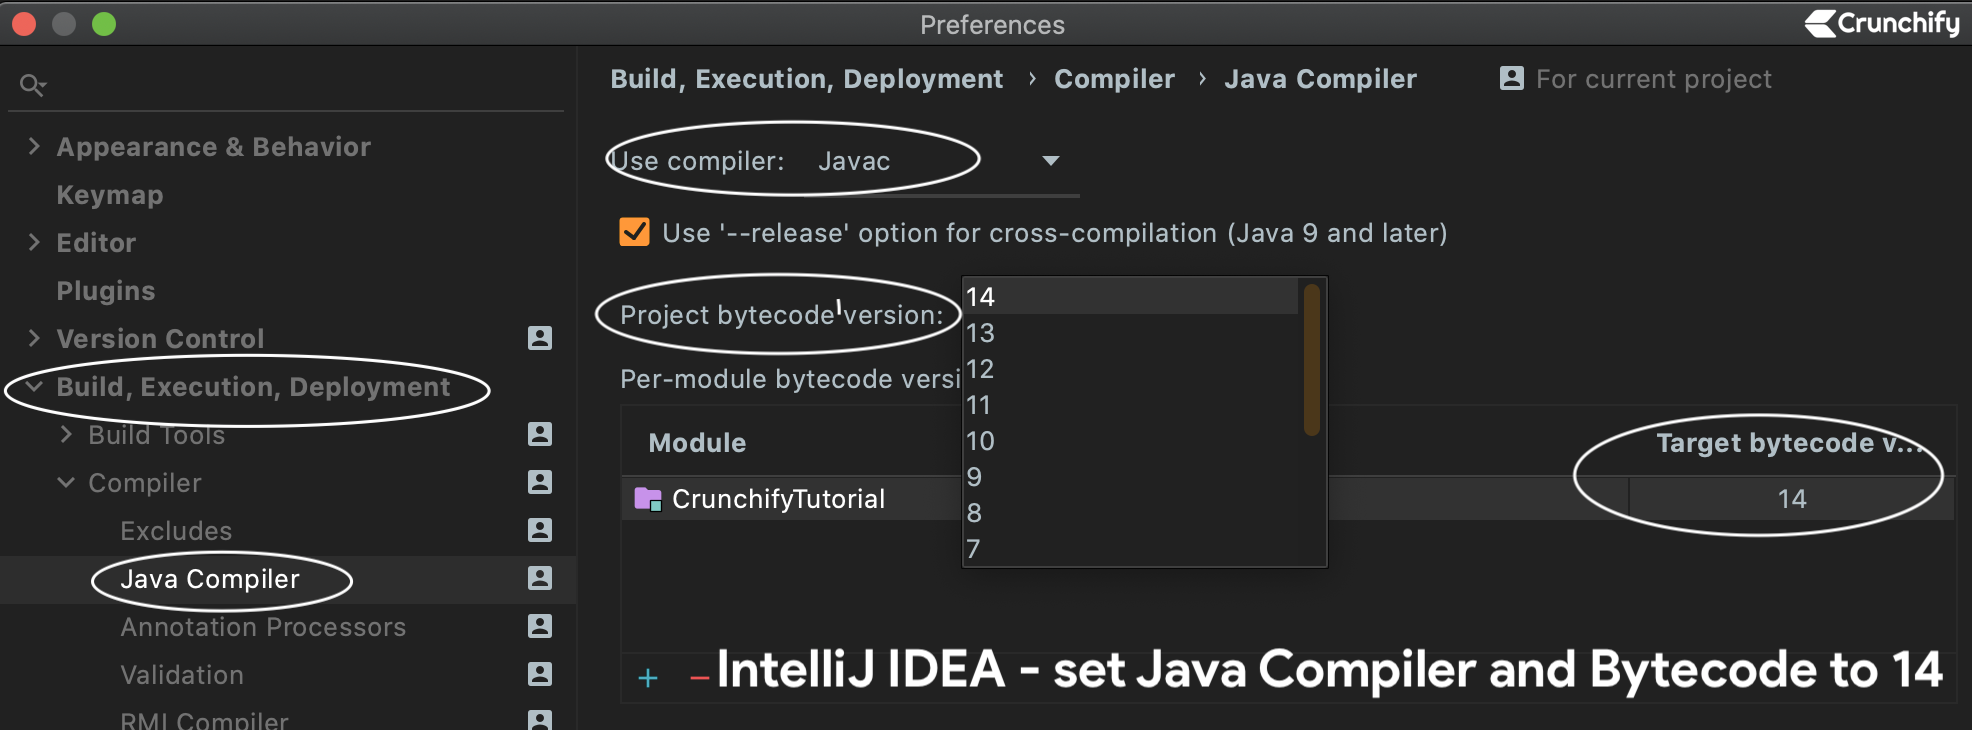 IntelliJ IDEA - set Java Compiler and Bytecode to 14